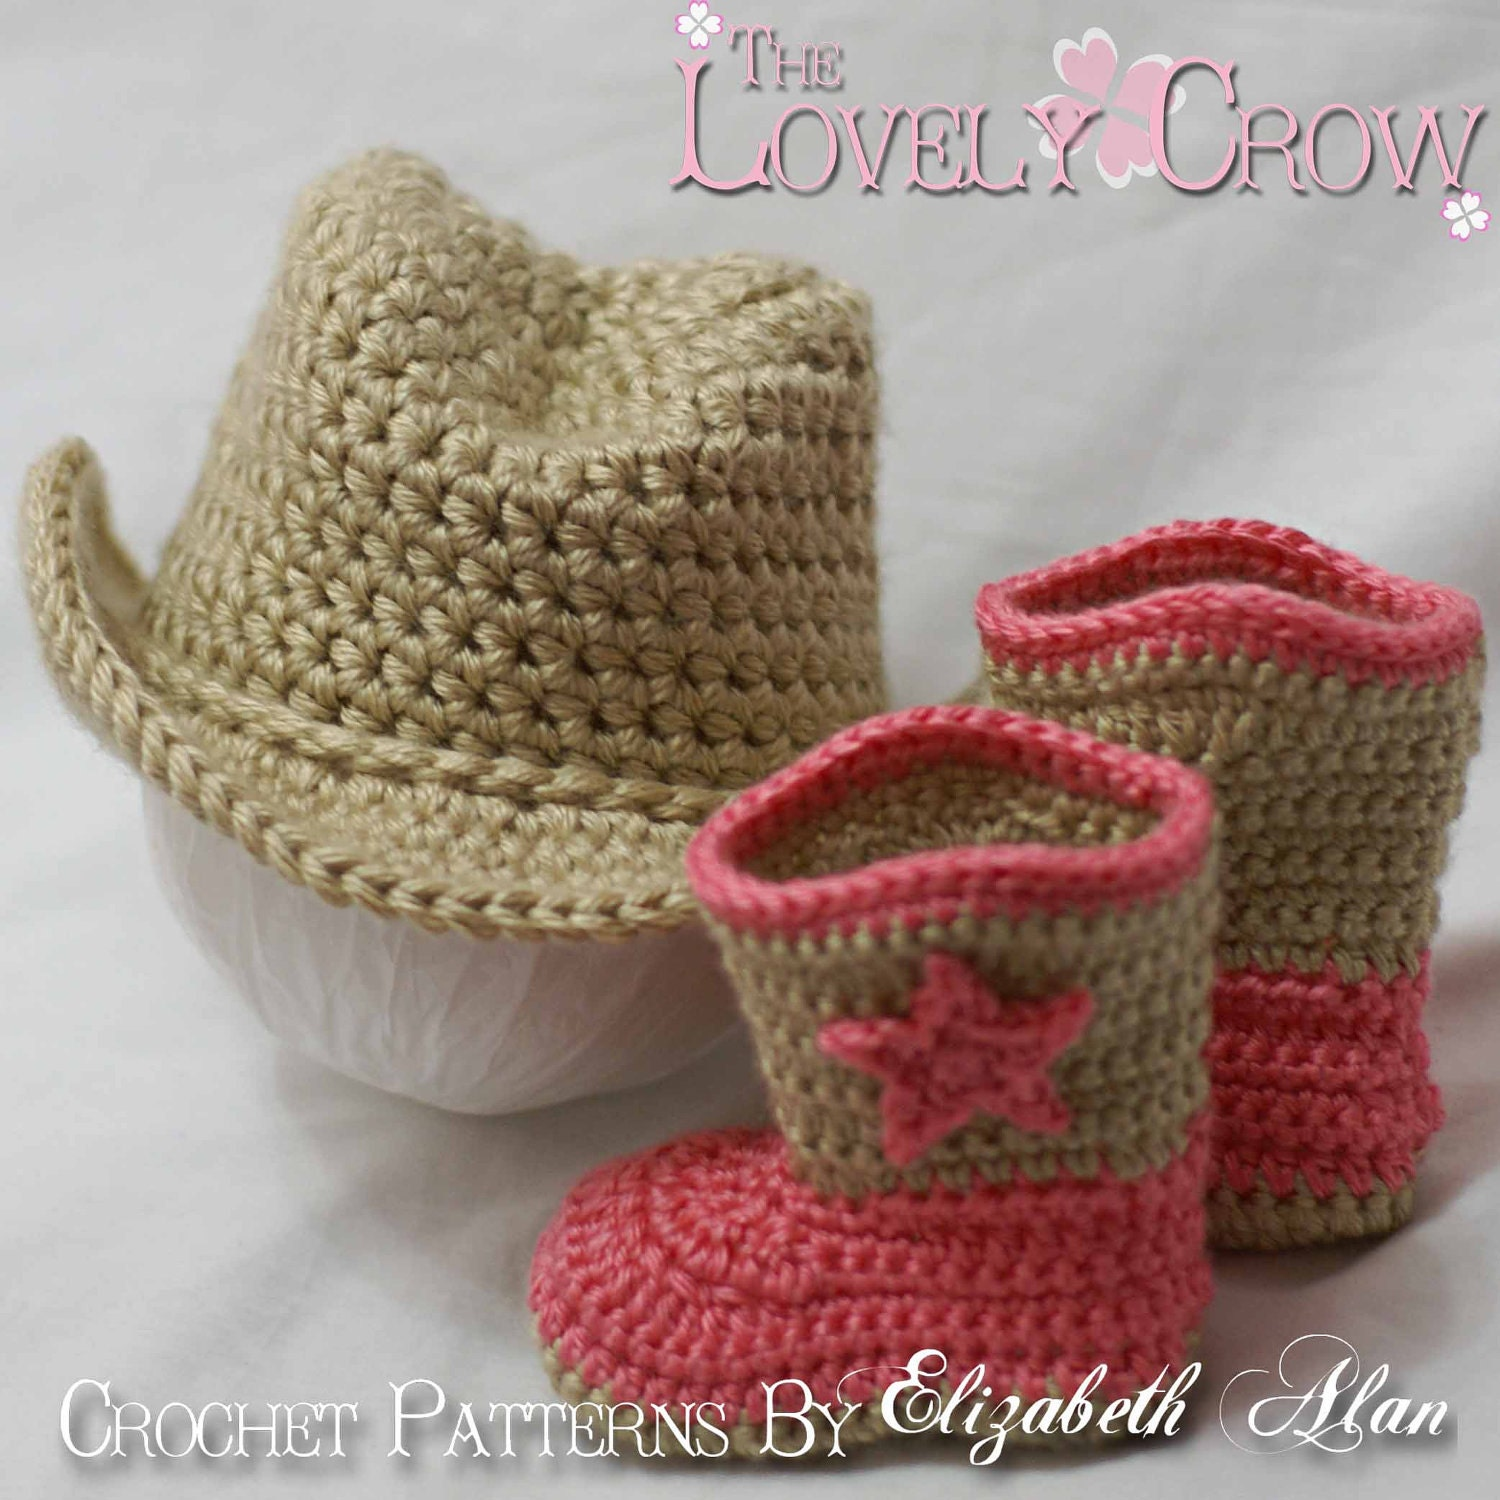 Cowboy Hat Cowboy Boots Crochet Patterns. Includes patterns